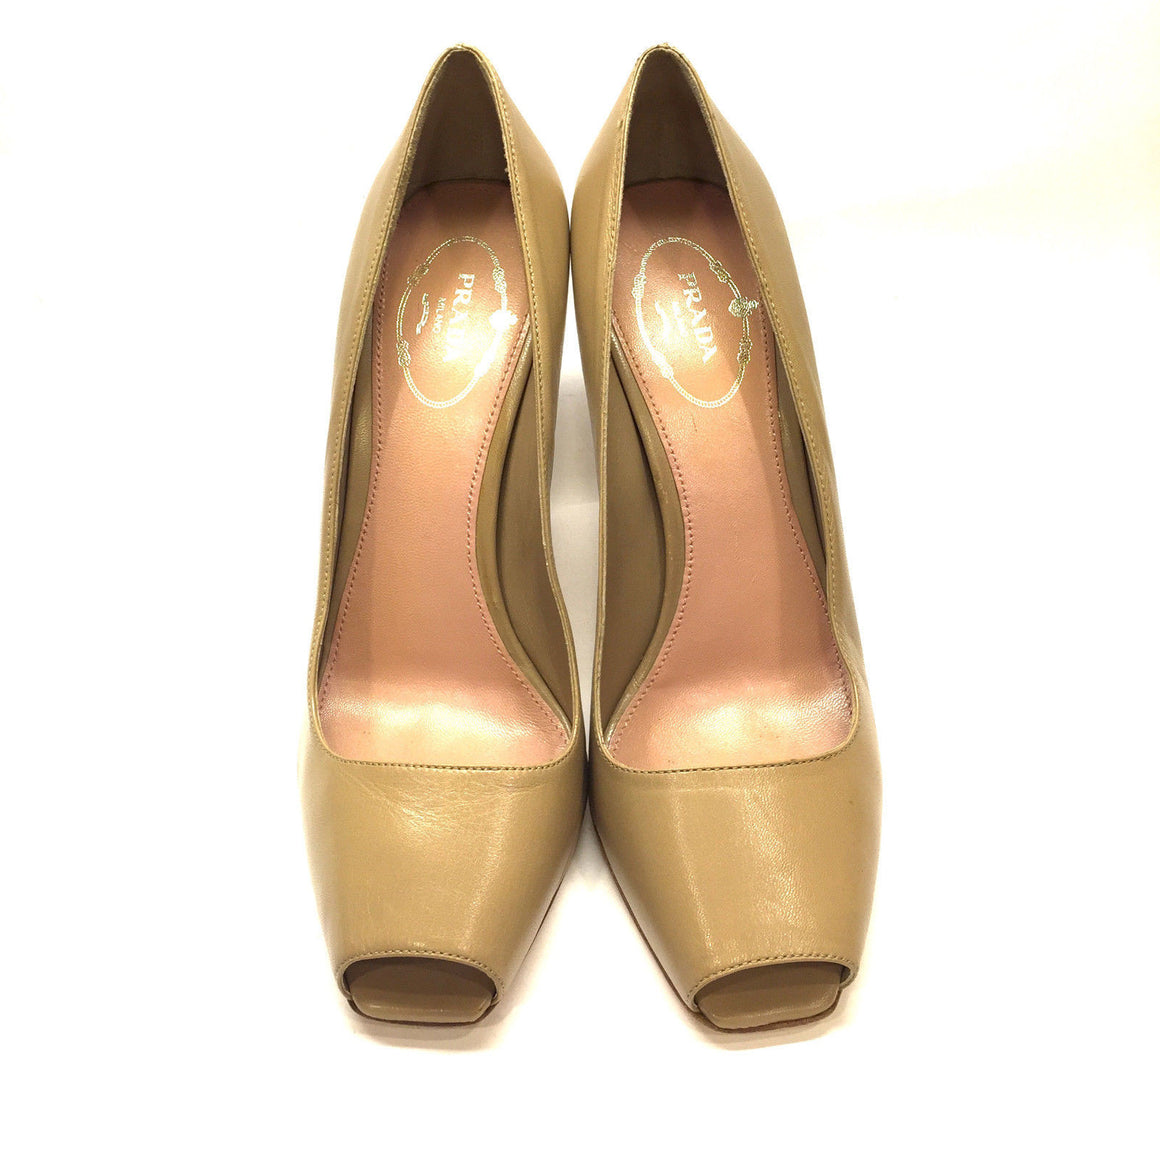 bisbiz.com PRADA  Beige Leather Peep-Toe Heel Pumps Shoes Size: 39 / 9 - Bis Luxury Resale